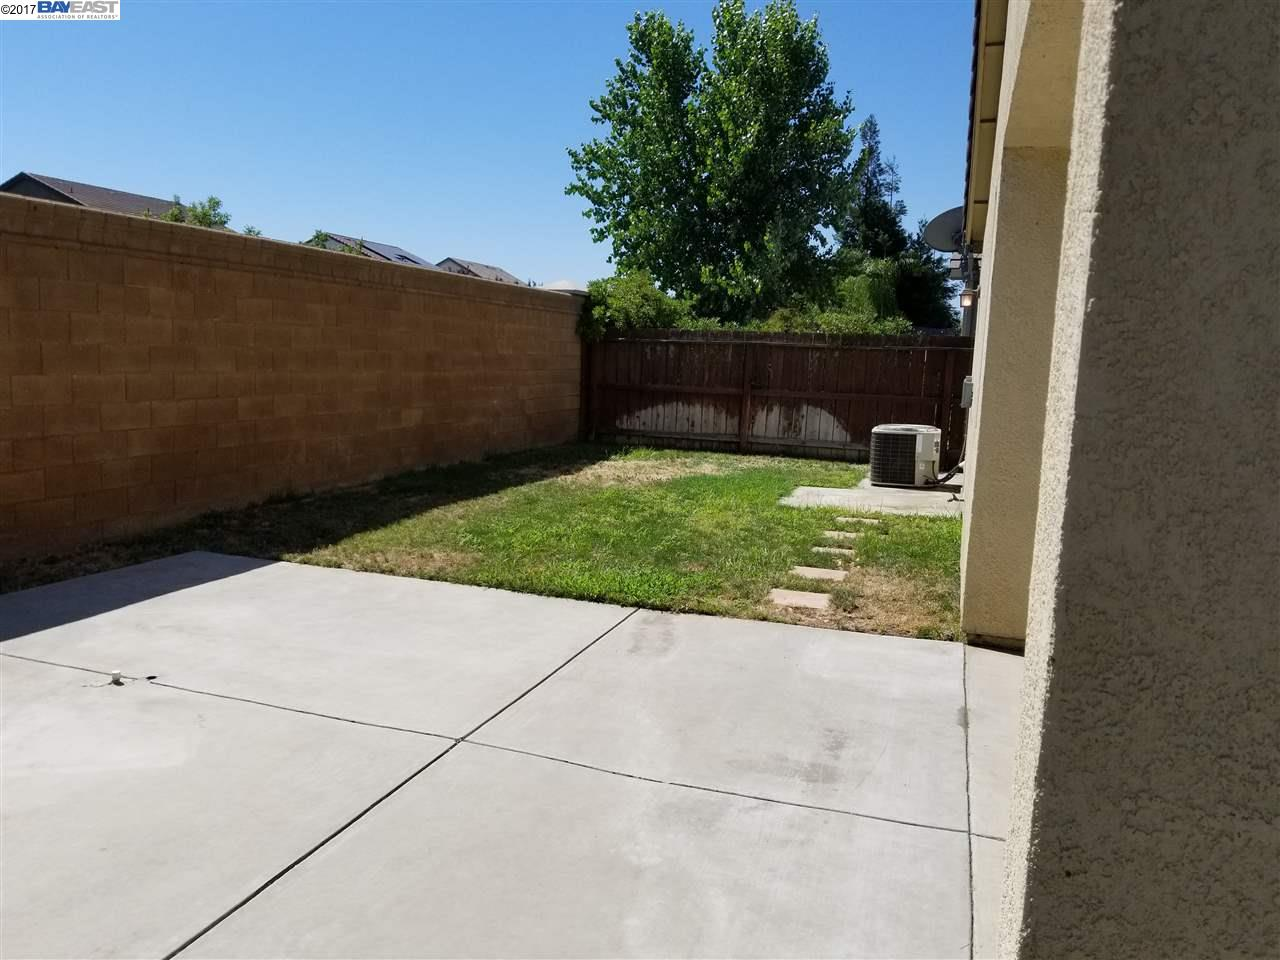 Additional photo for property listing at 1436 Garold Lane  Manteca, California 95377 Estados Unidos